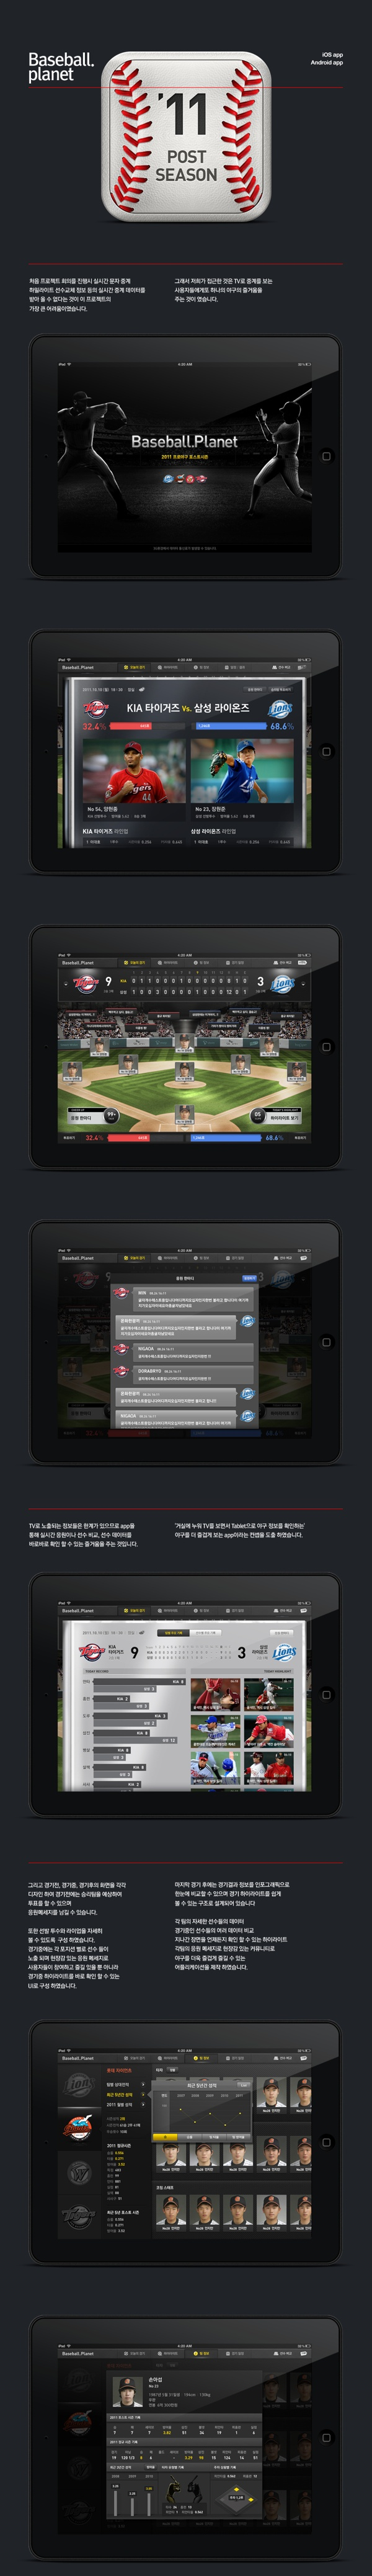 Baseball. planet App by Plus X , via Behance